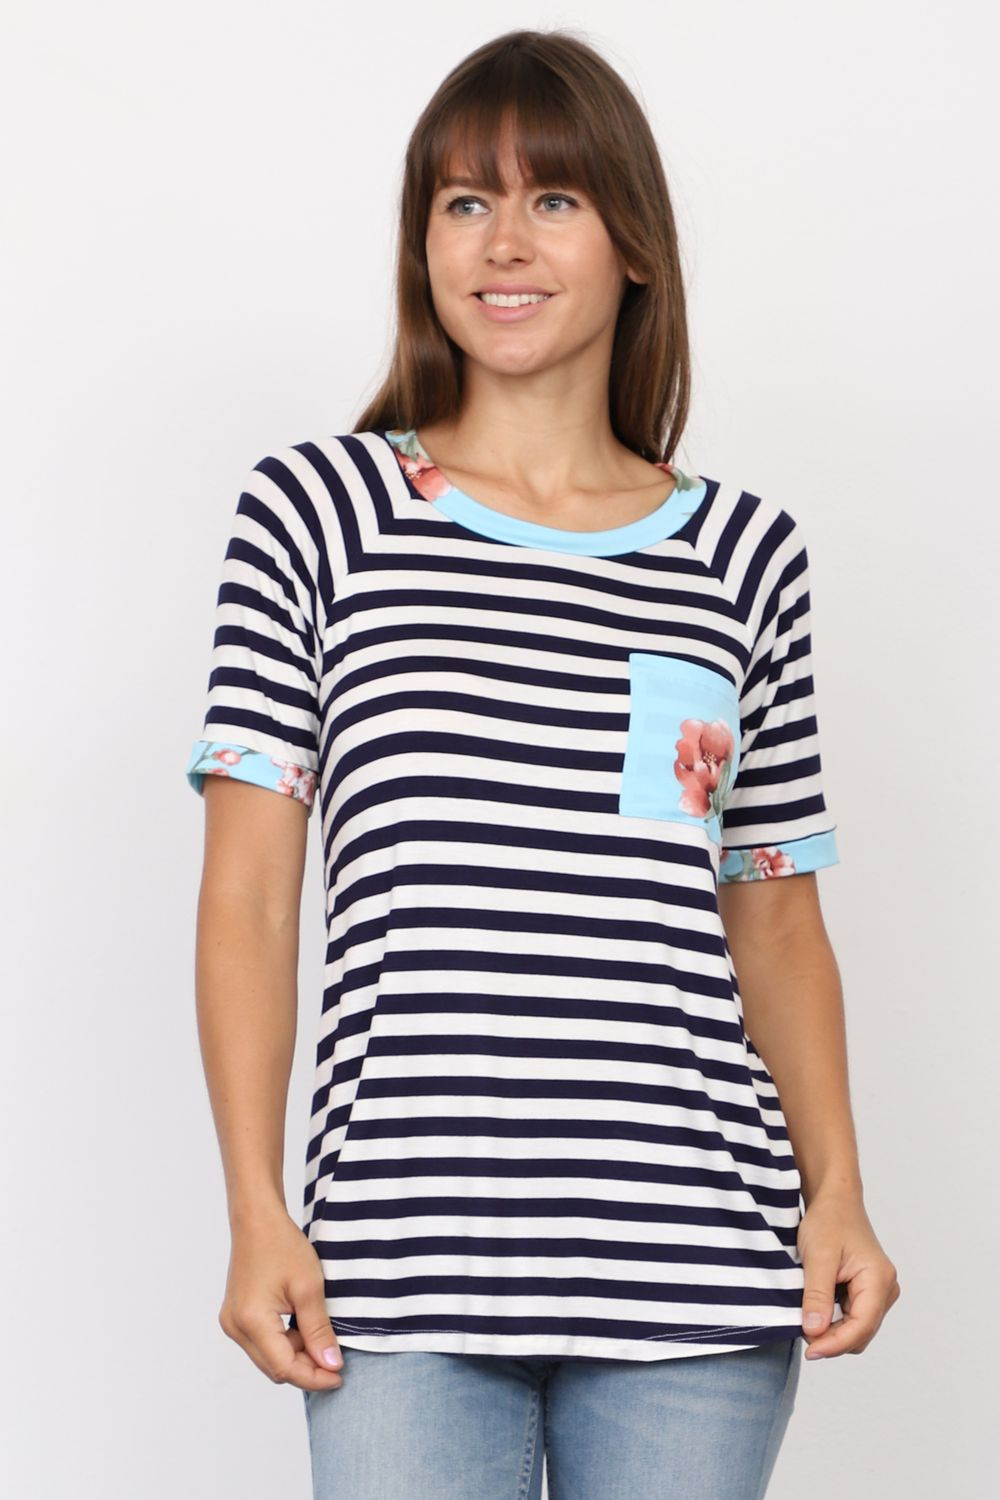 Navy Stripe Short Sleeve Top with Mint Floral Front Pocket_Plus